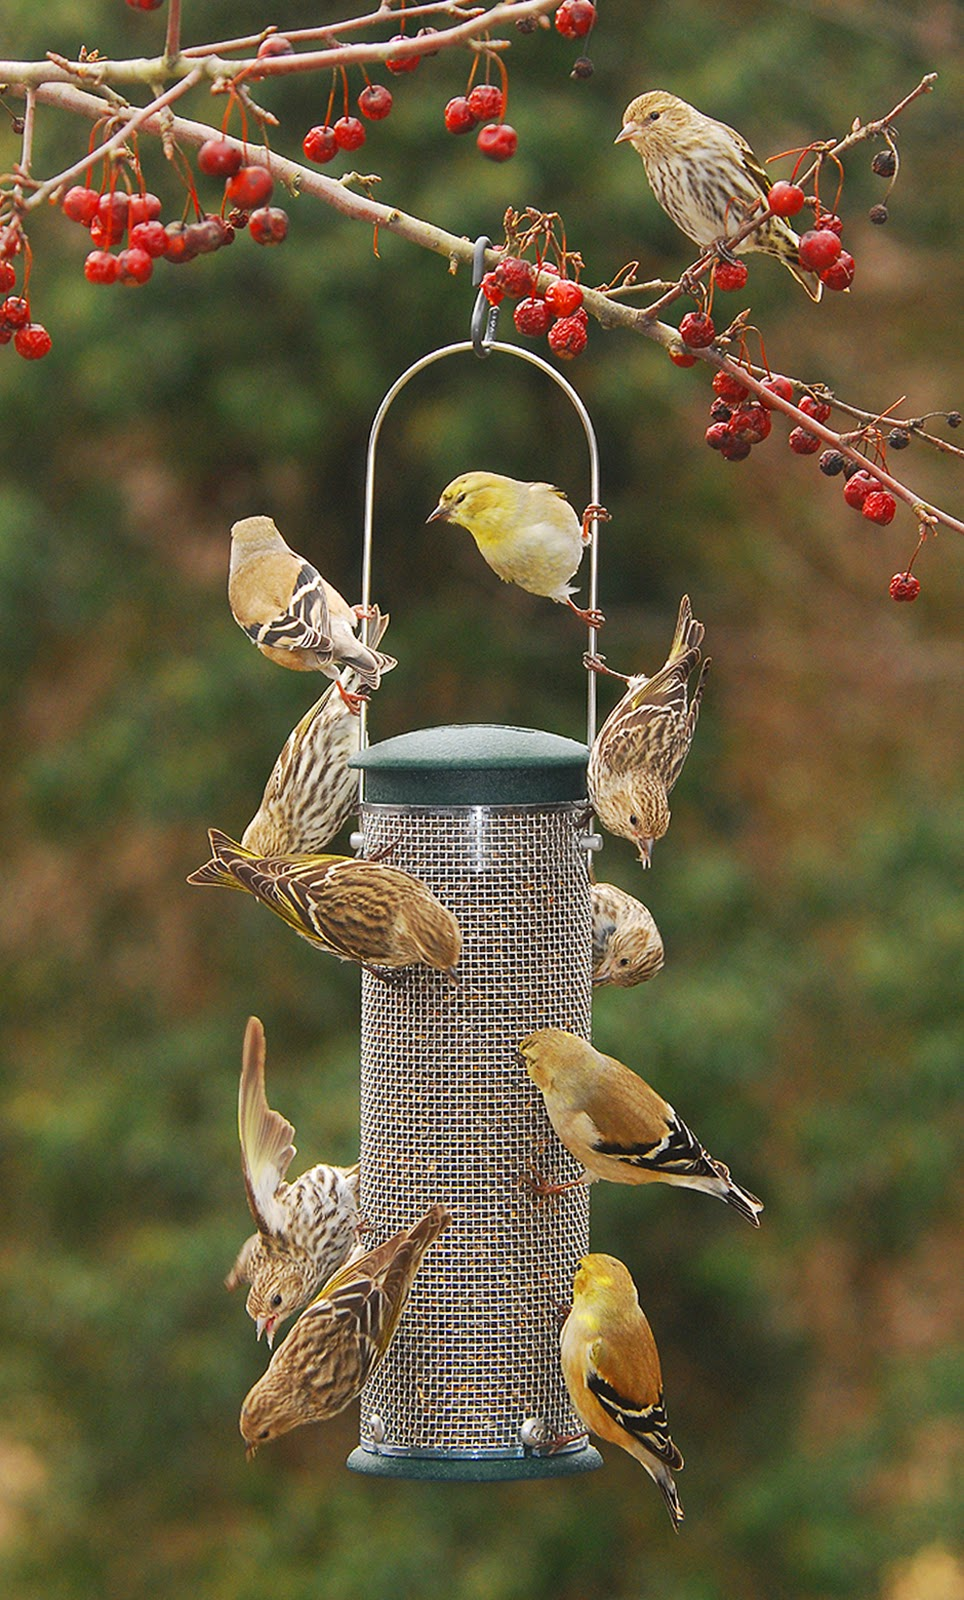 wild birds unlimited disappearance of usual birds at backyard feeder